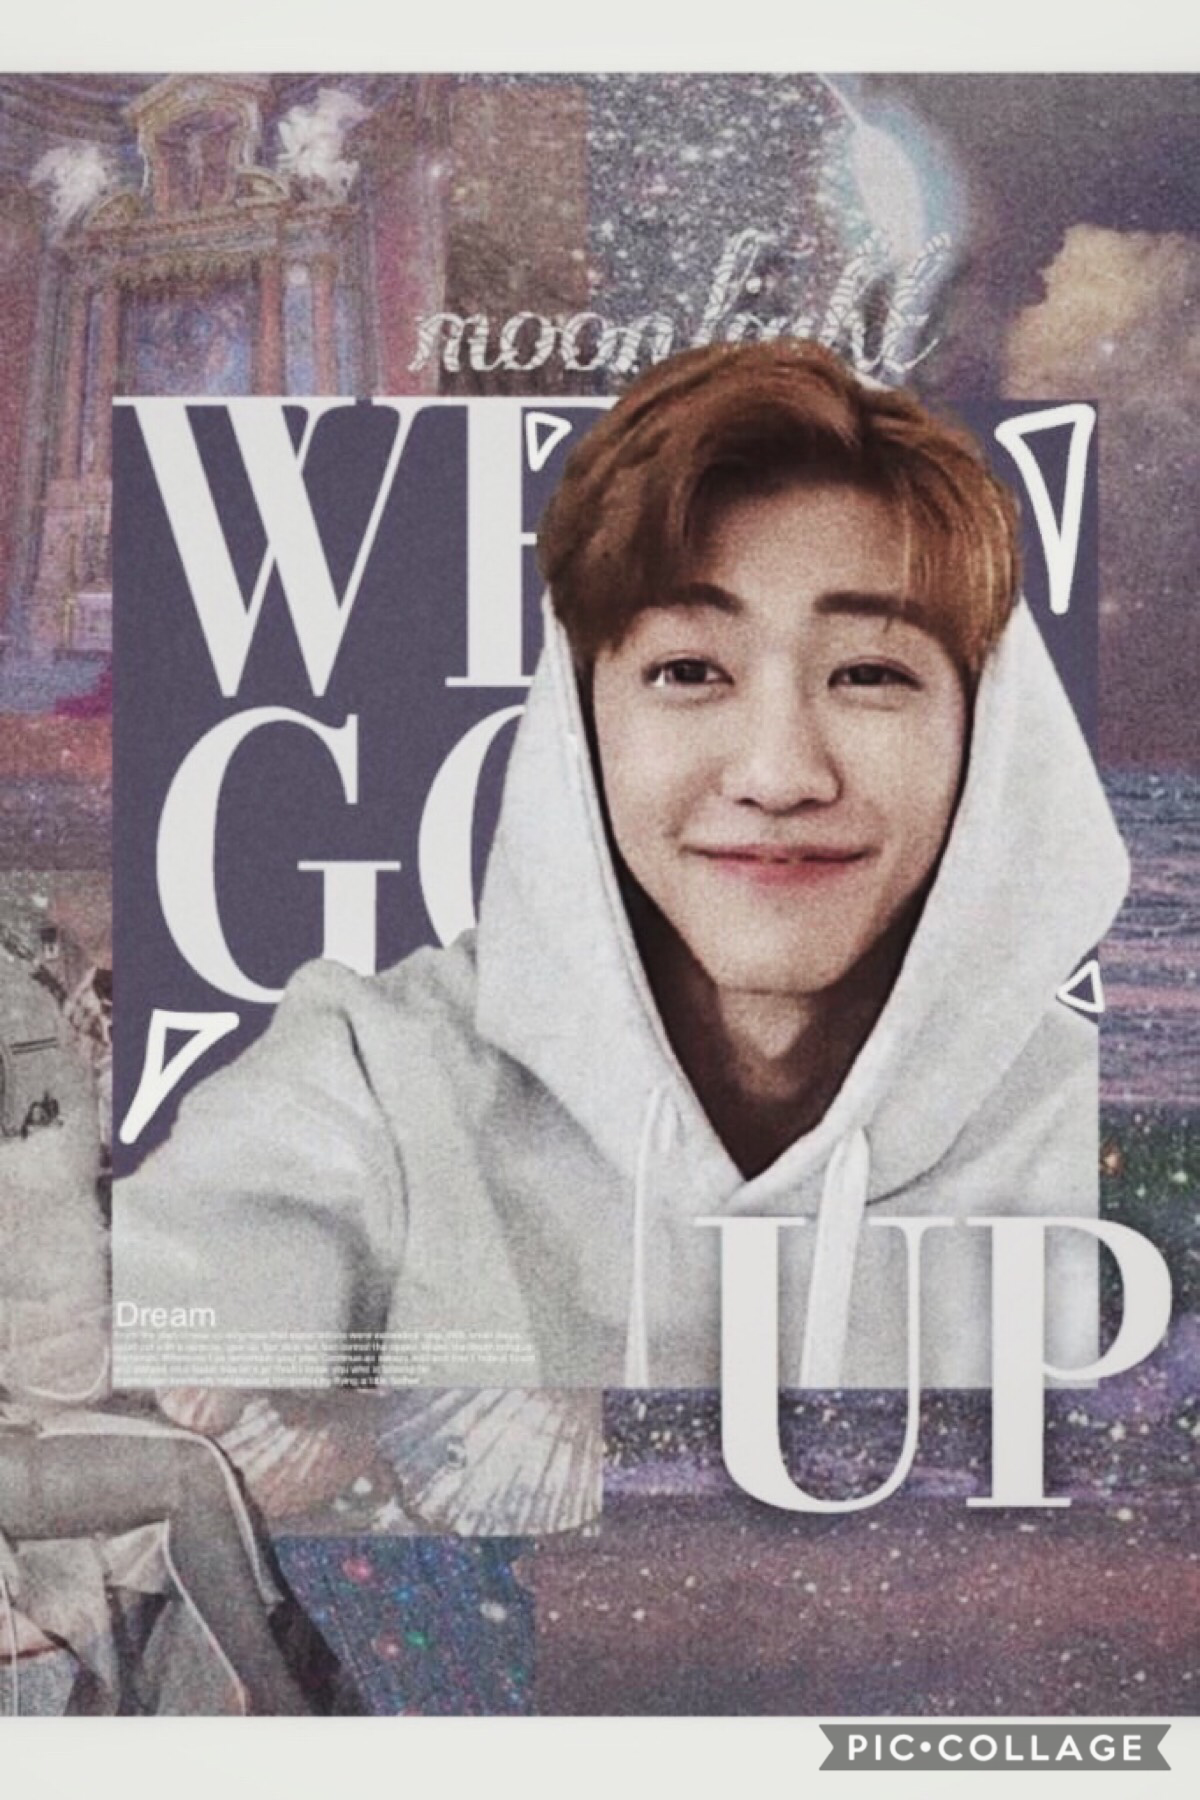 COLLAB WITH... the beautiful, the talented, the underrated.... @truedahyun AHHH I LOVE JAEMIN SO GISH DARN MUCH AND JSJDJD I LOVED WORKING WITH YOUUUU 💜💜💜